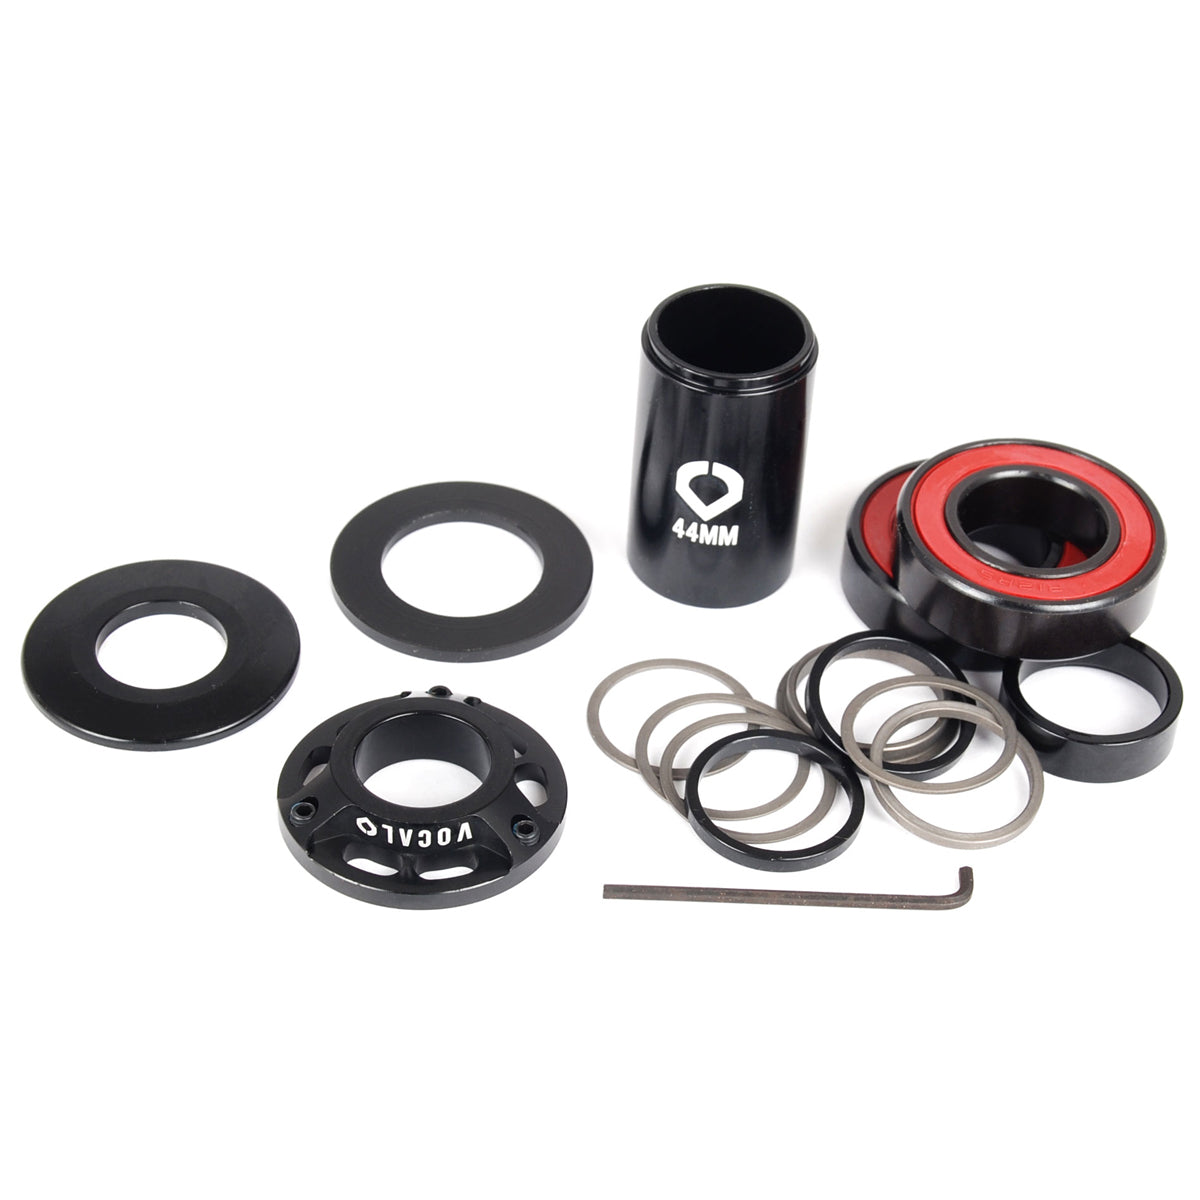 Vocal Vice DRS Full Kit Mid Innenlager / Bottom Bracket 19mm